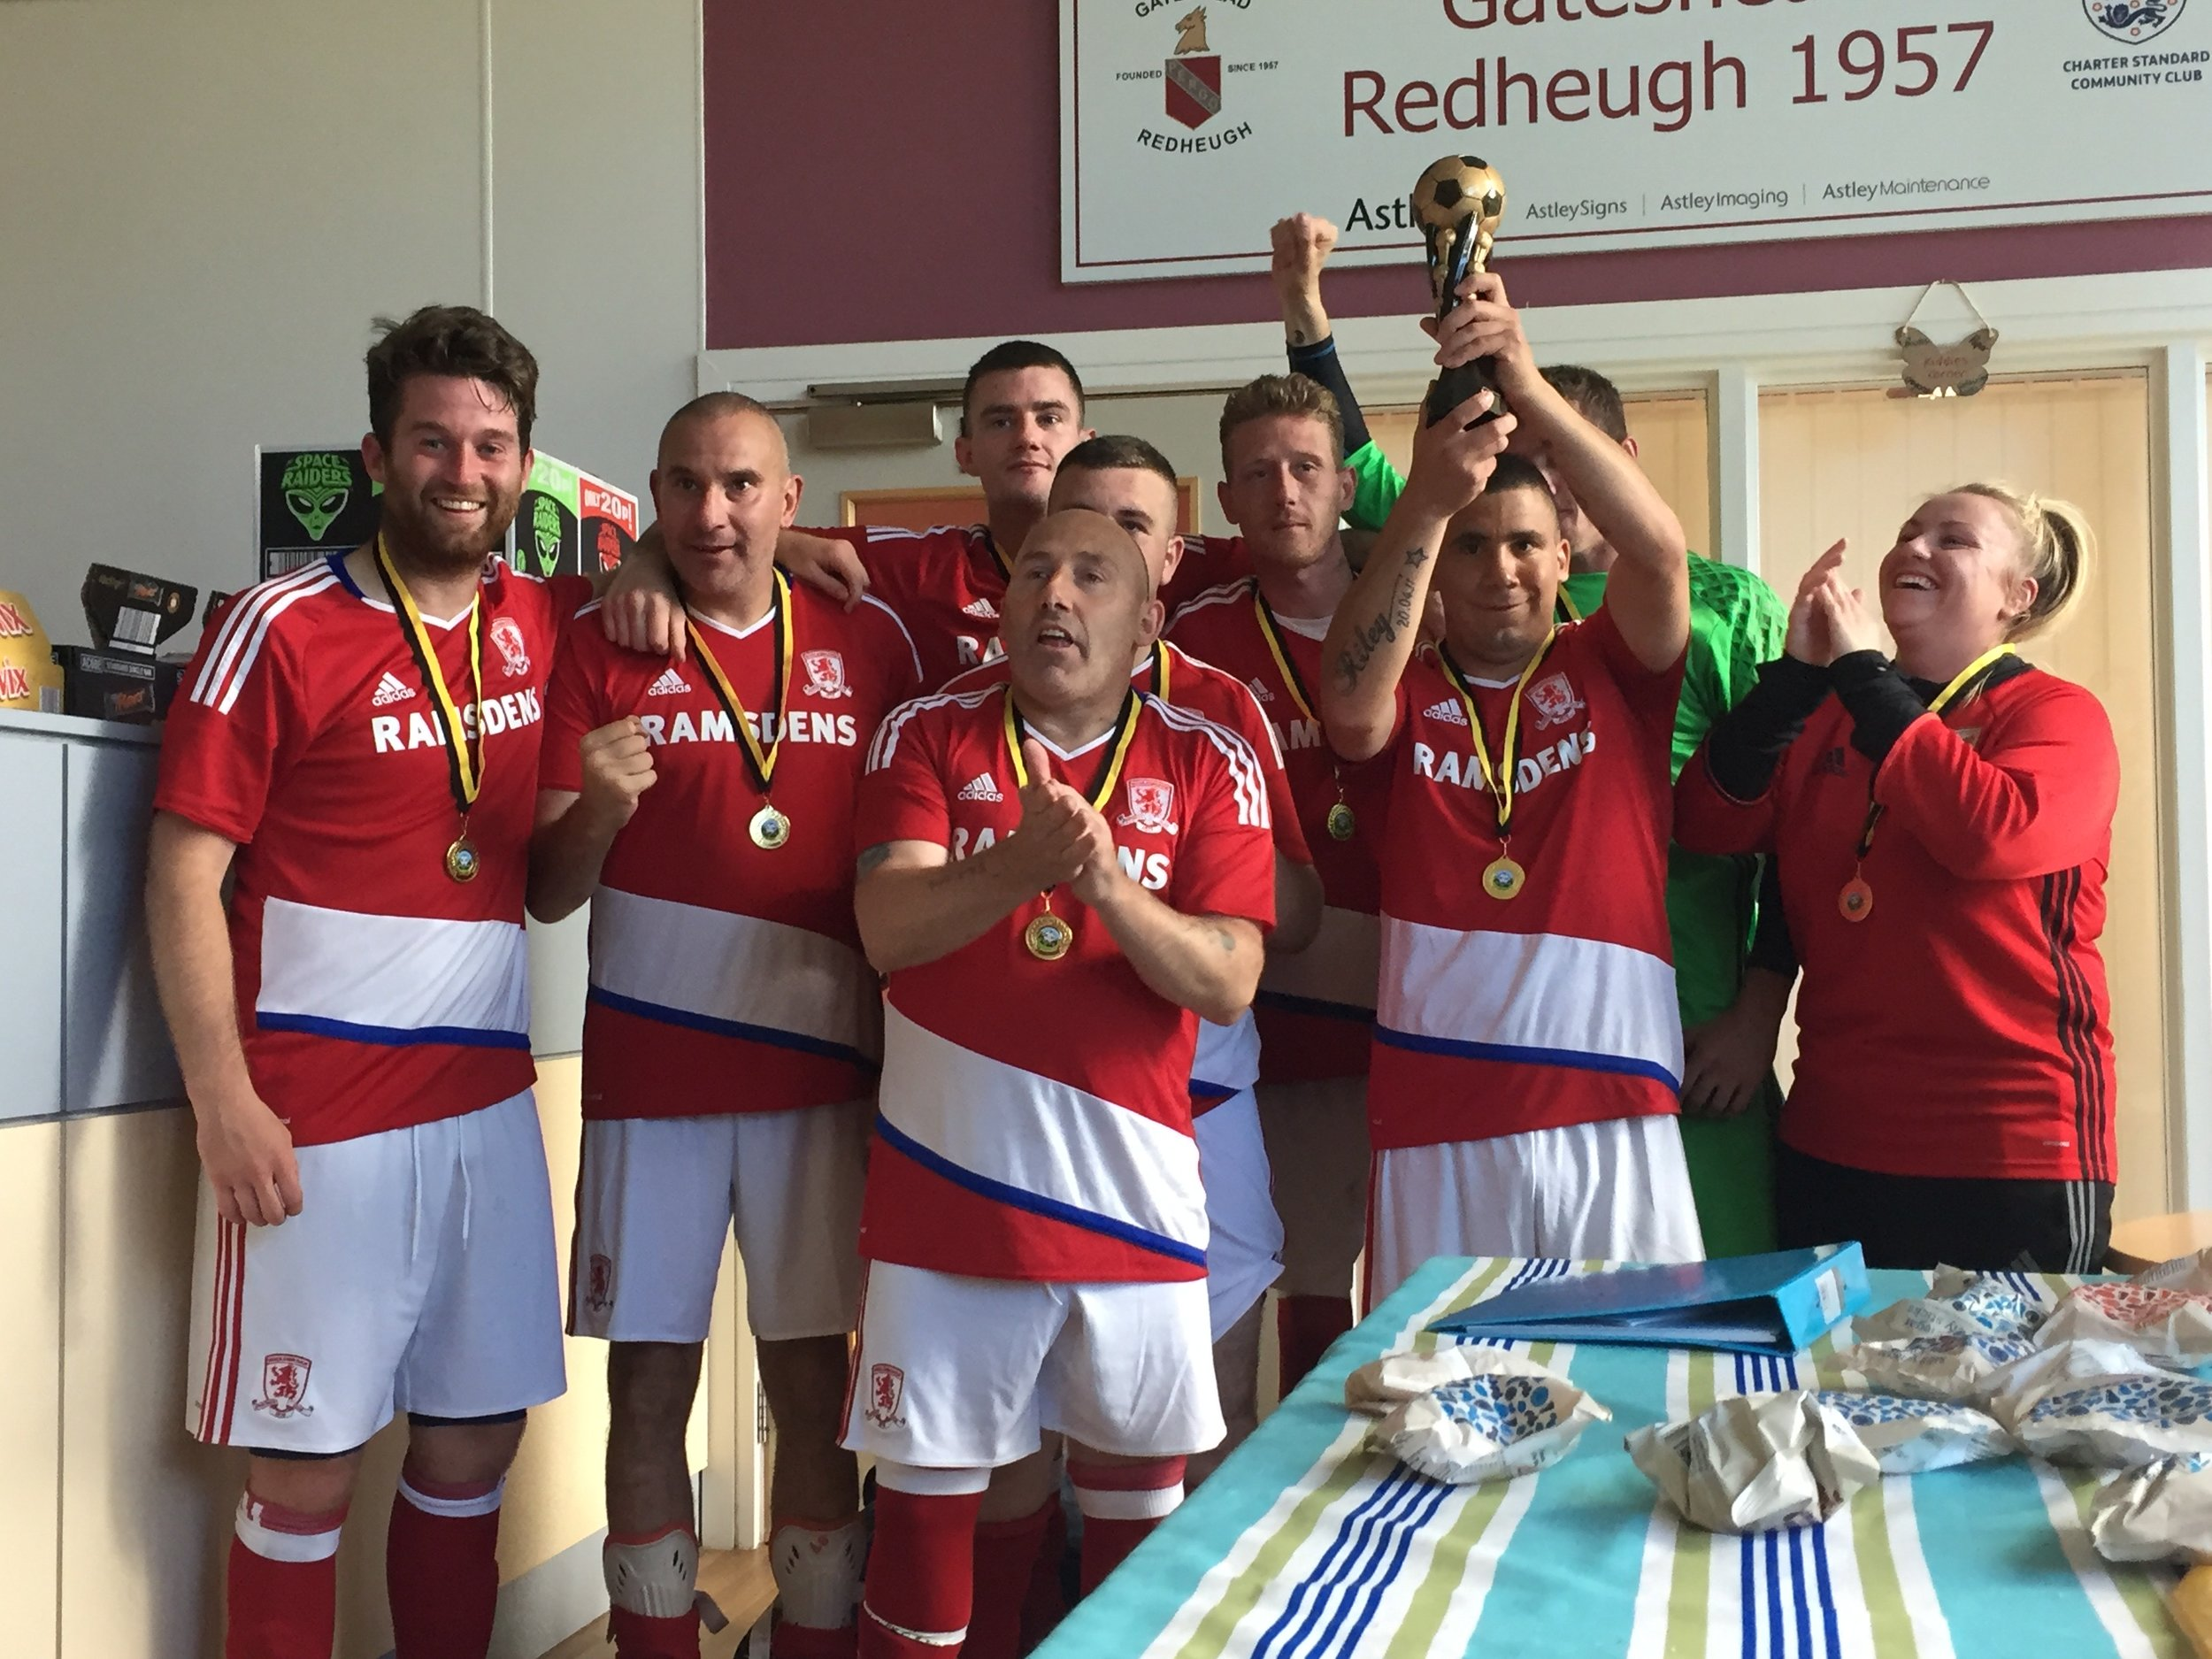 Another tournament, another win by our friends from the MFC Foundation!